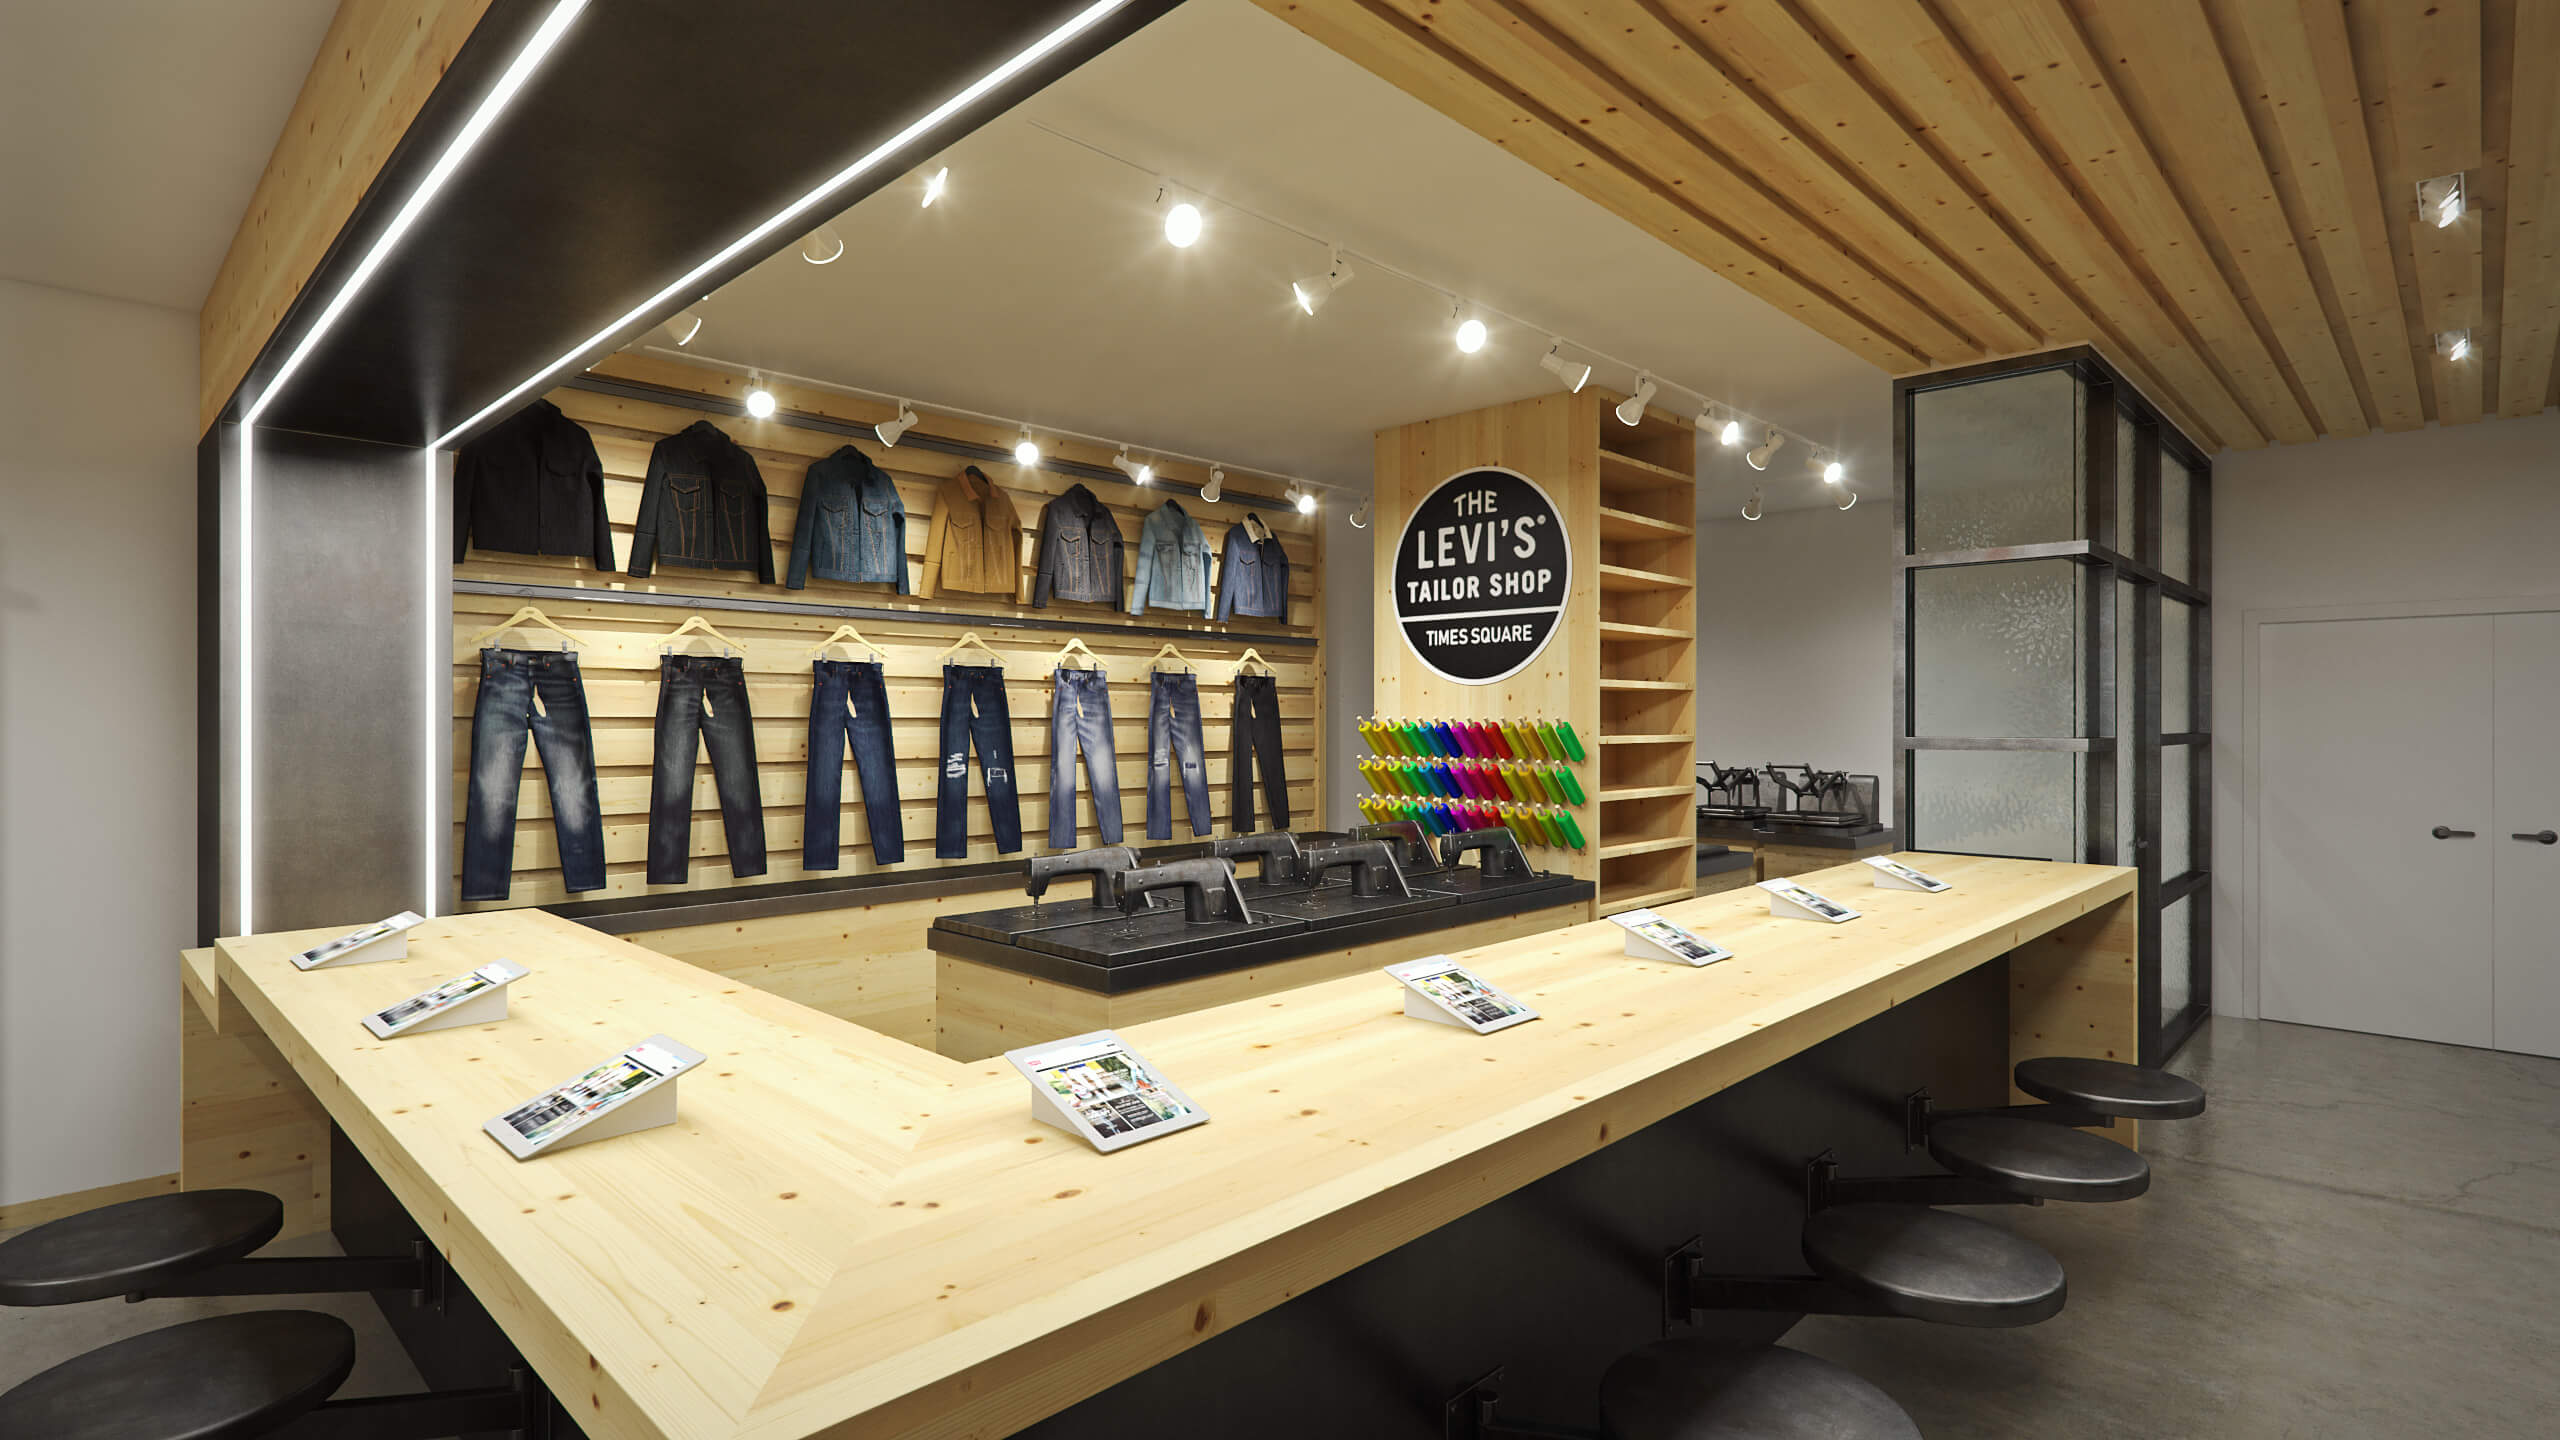 3D transformation, render vs real, Levi's, flagship, store, times square, new york city, interior, render, 3d, pixelpool, CAD